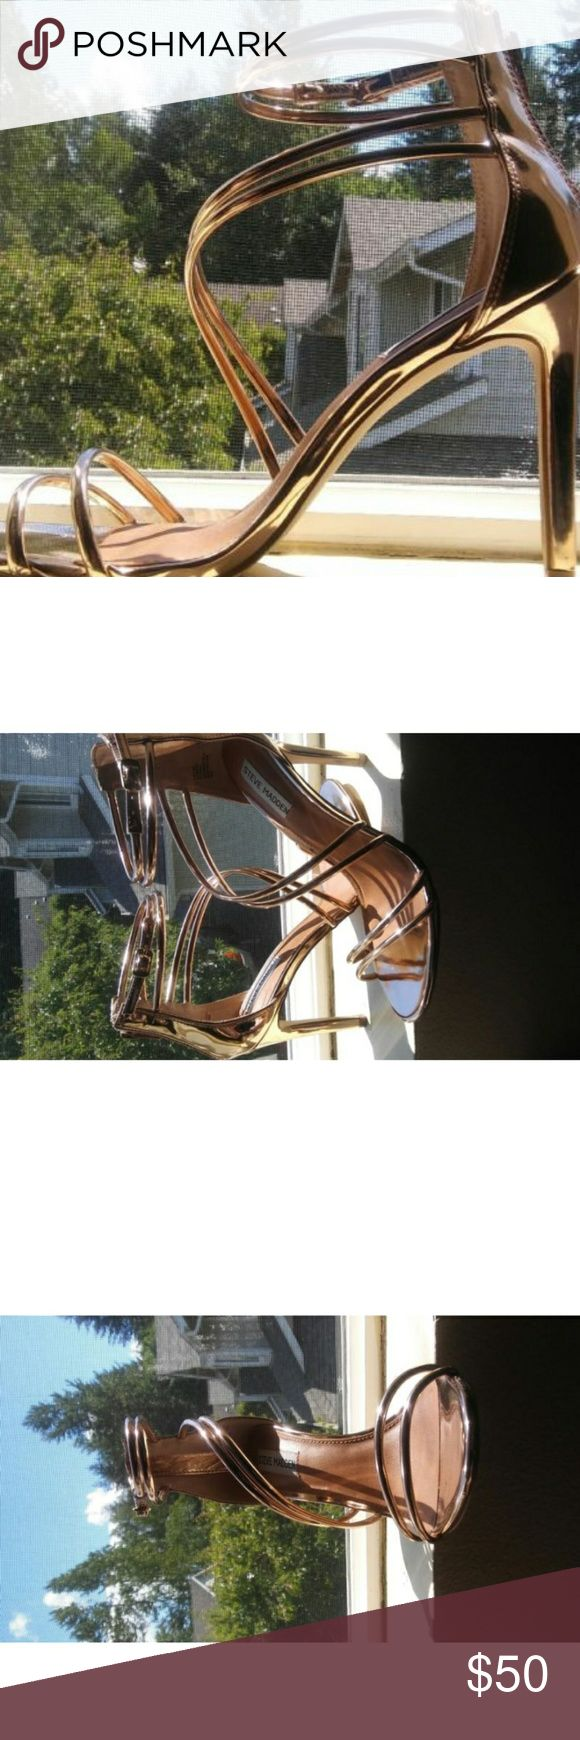 Rose Gold High Heels Has a zip up back and strappy small buckle on the side Steve Madden Shoes Heels